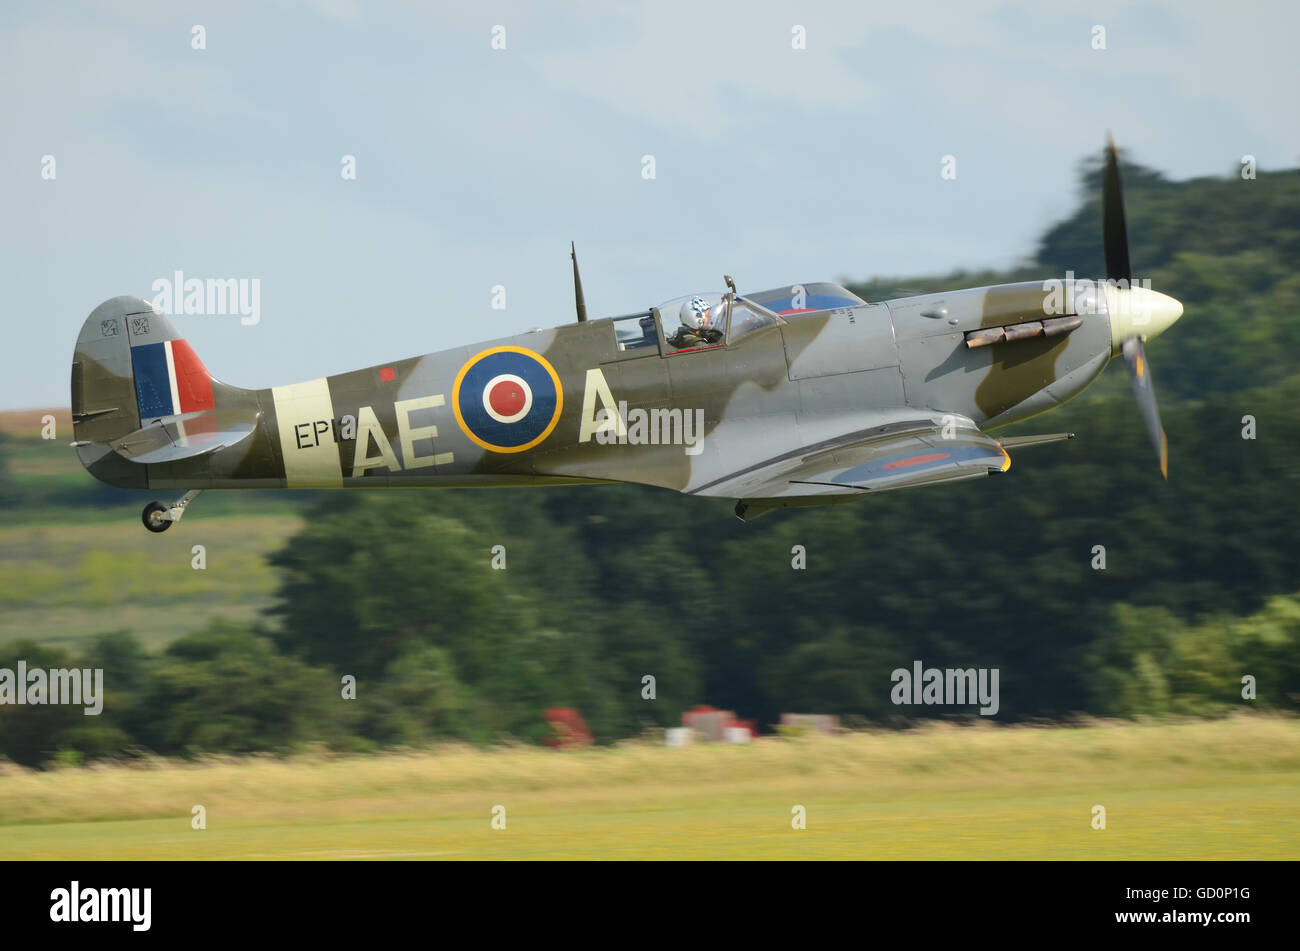 spitfire-lfvb-taking-off-during-iwm-duxfordthe-flying-legends-airshow-GD0P1G.jpg